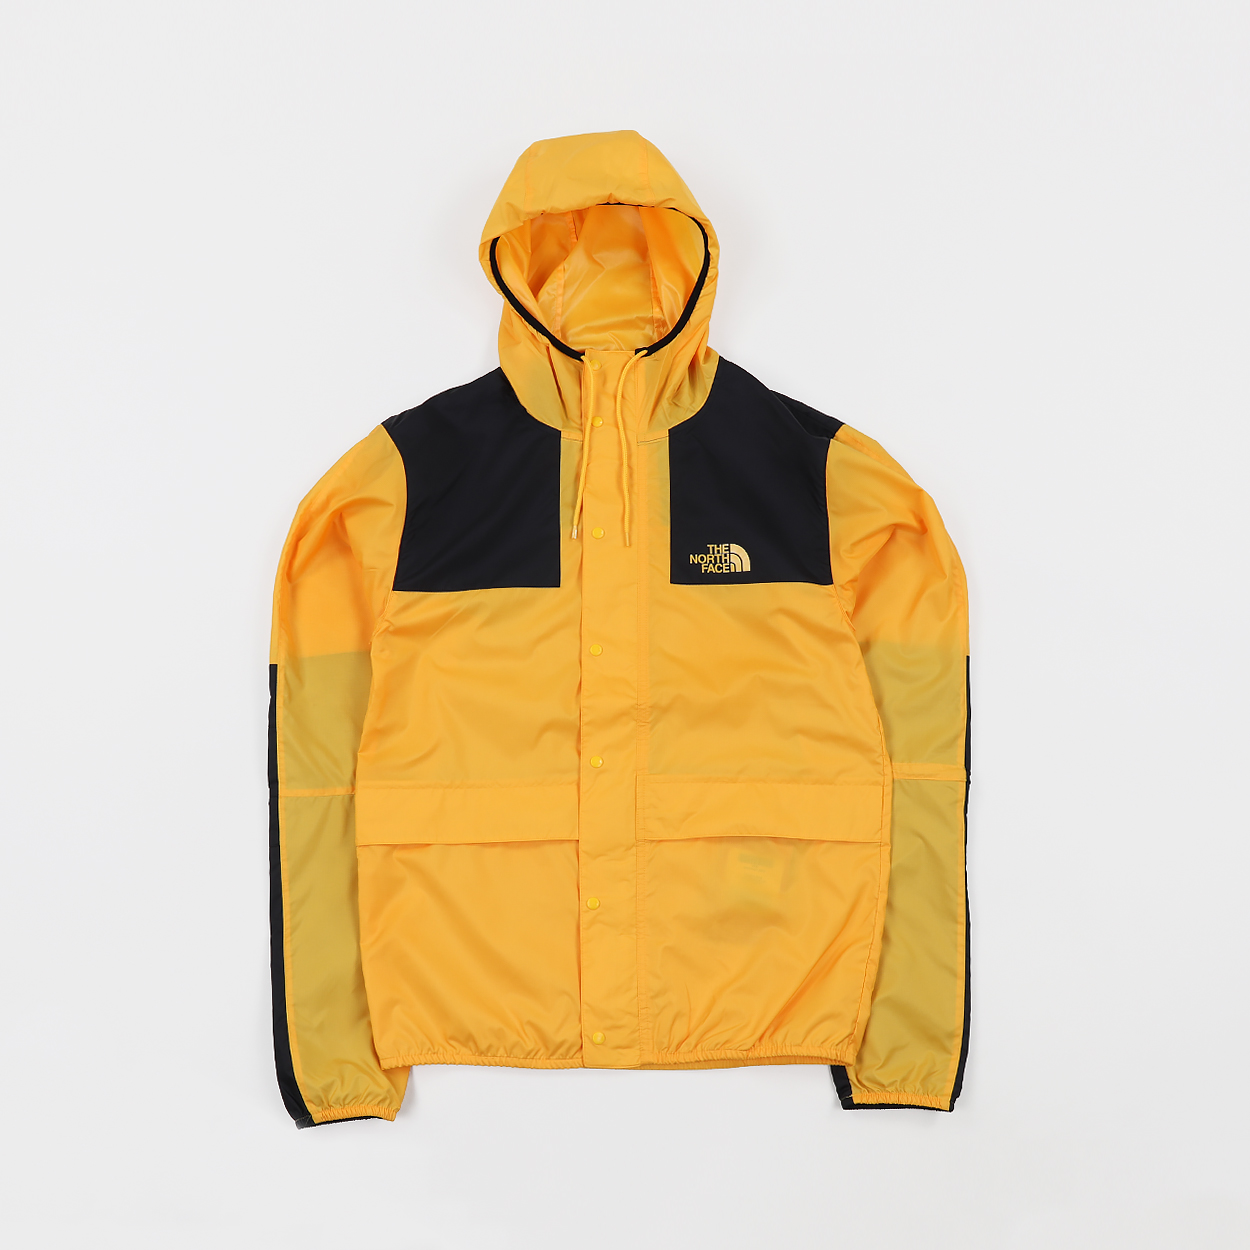 where can i buy the north face jacket yellow black yellow